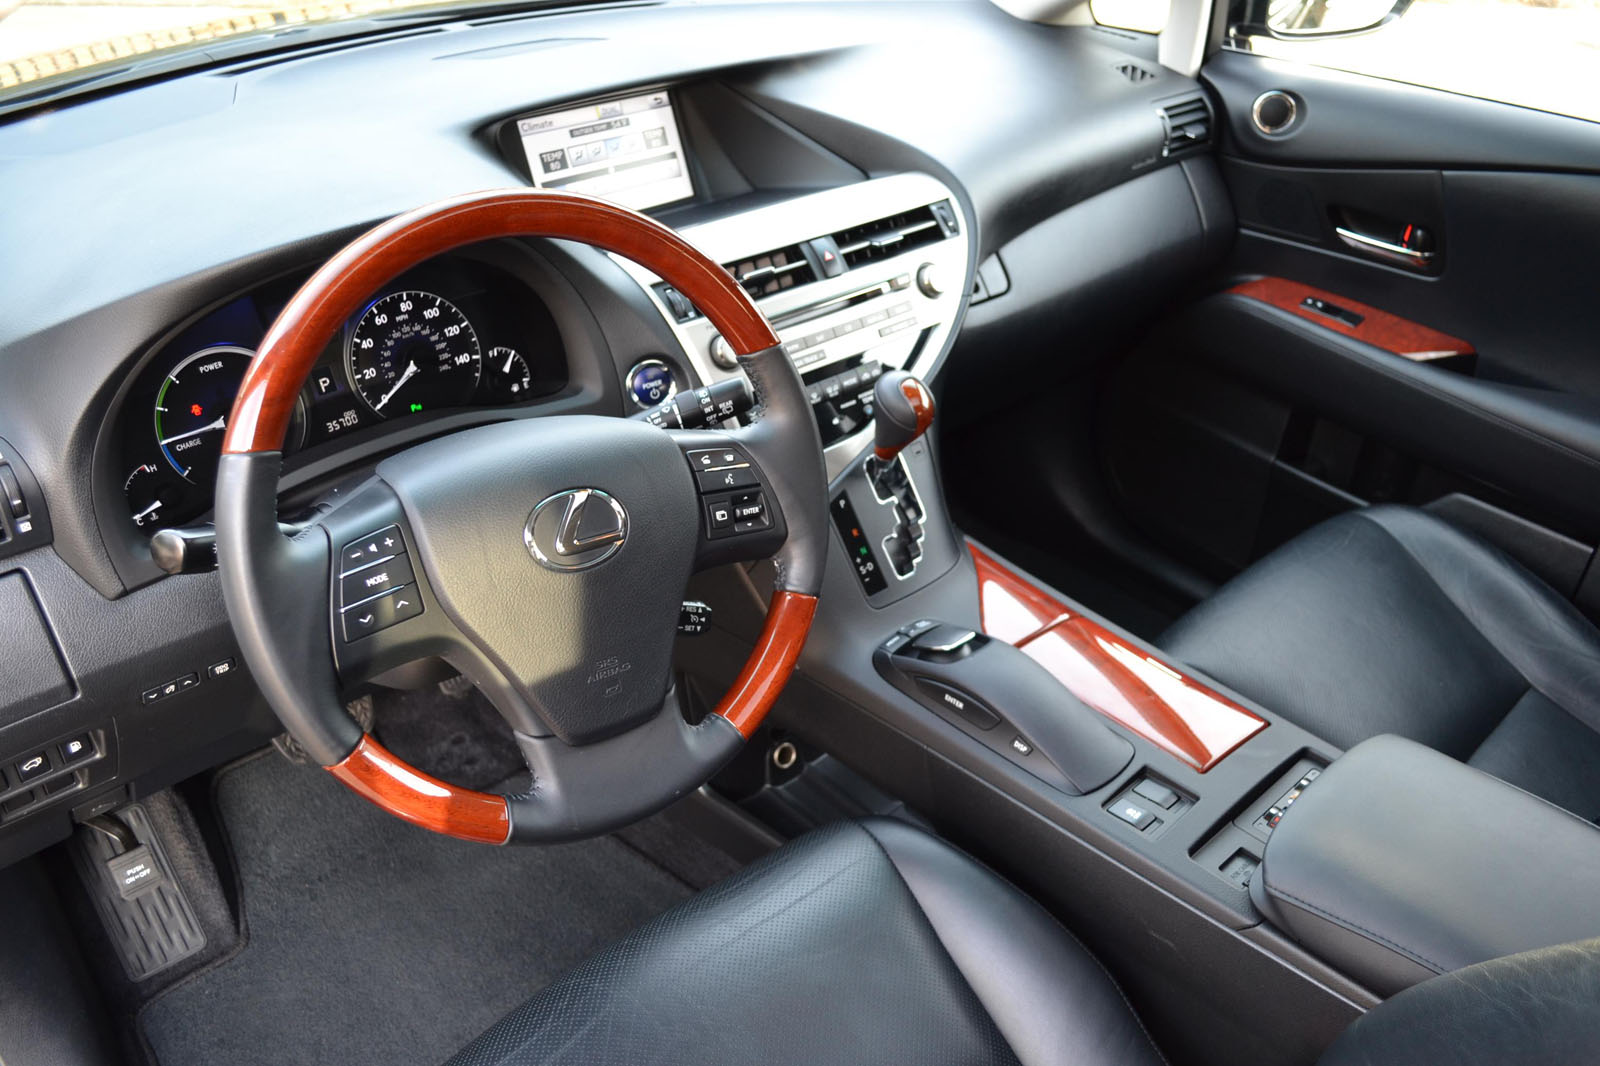 Pre Owned Cars >> 2012 Lexus RX450H - Hybrid Pre-Owned